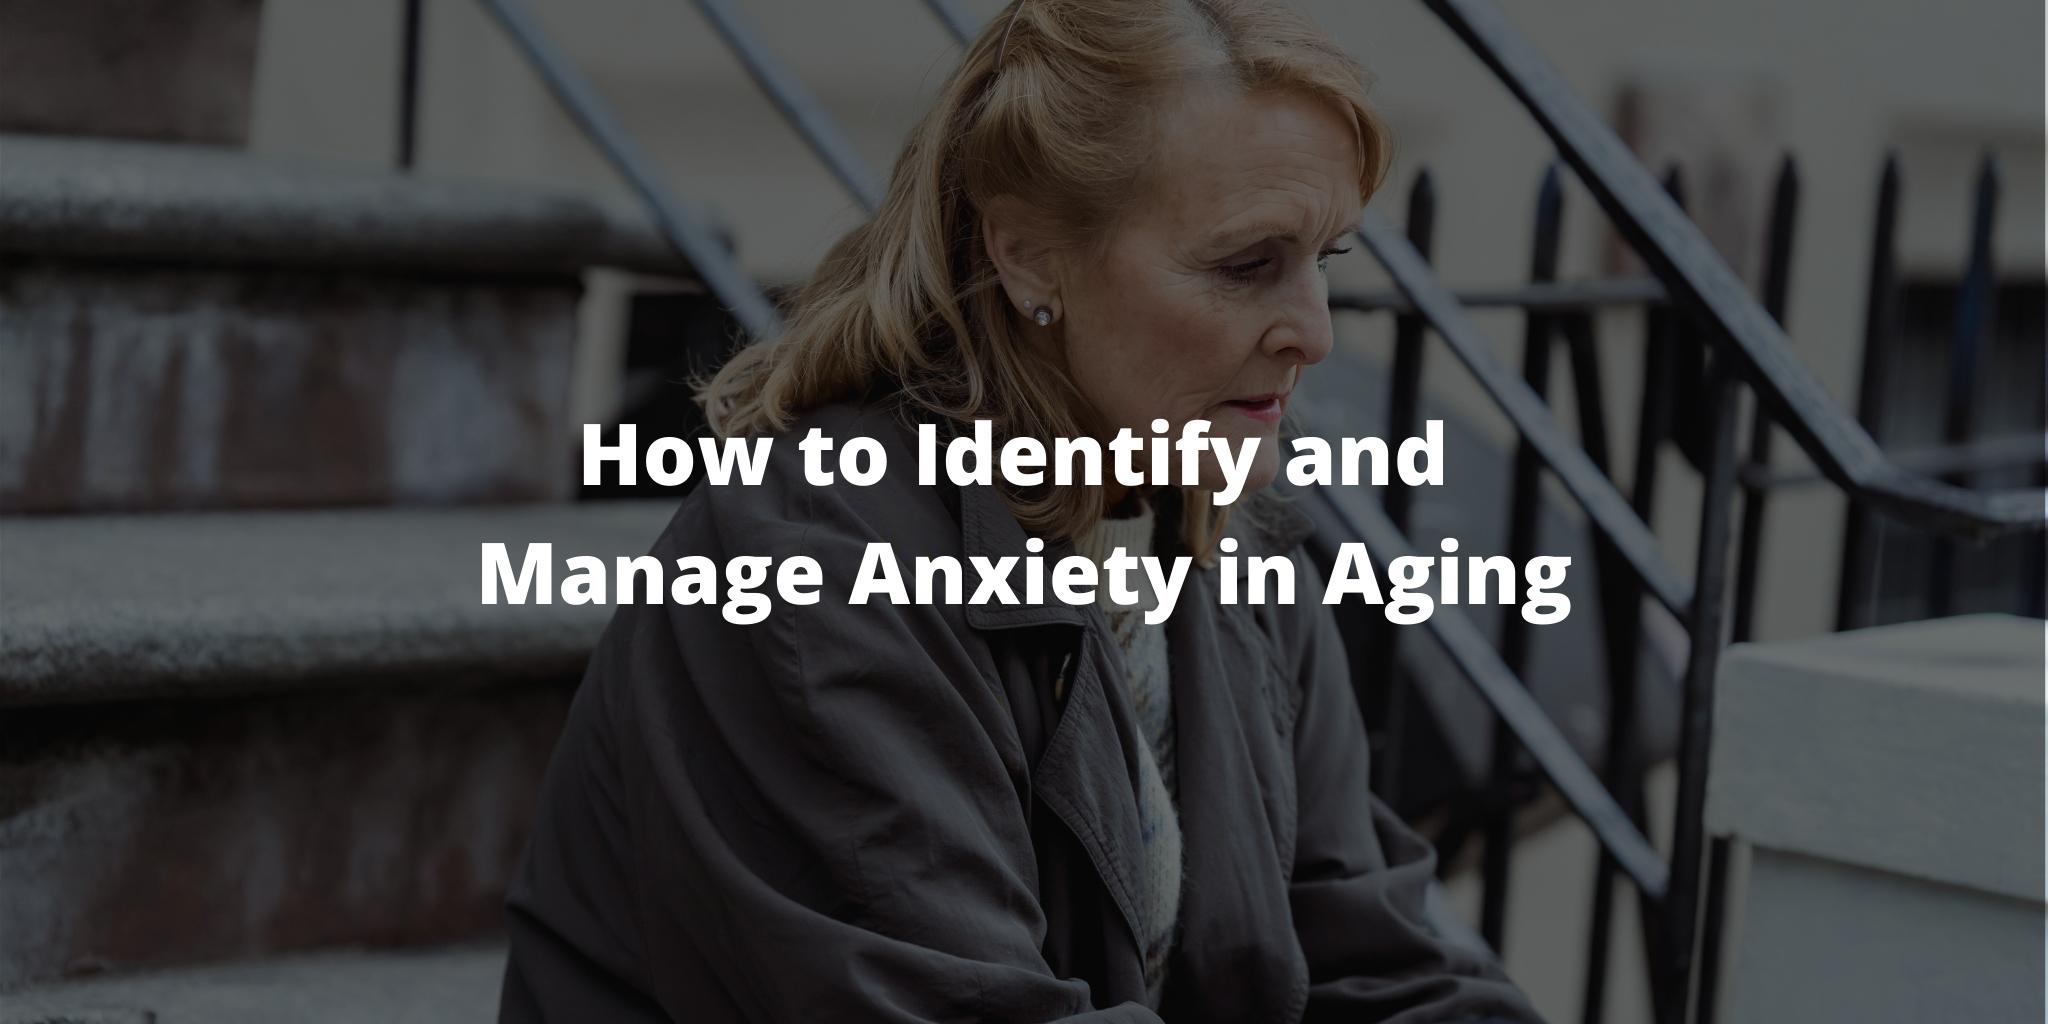 How to Identify and Manage Anxiety in Aging